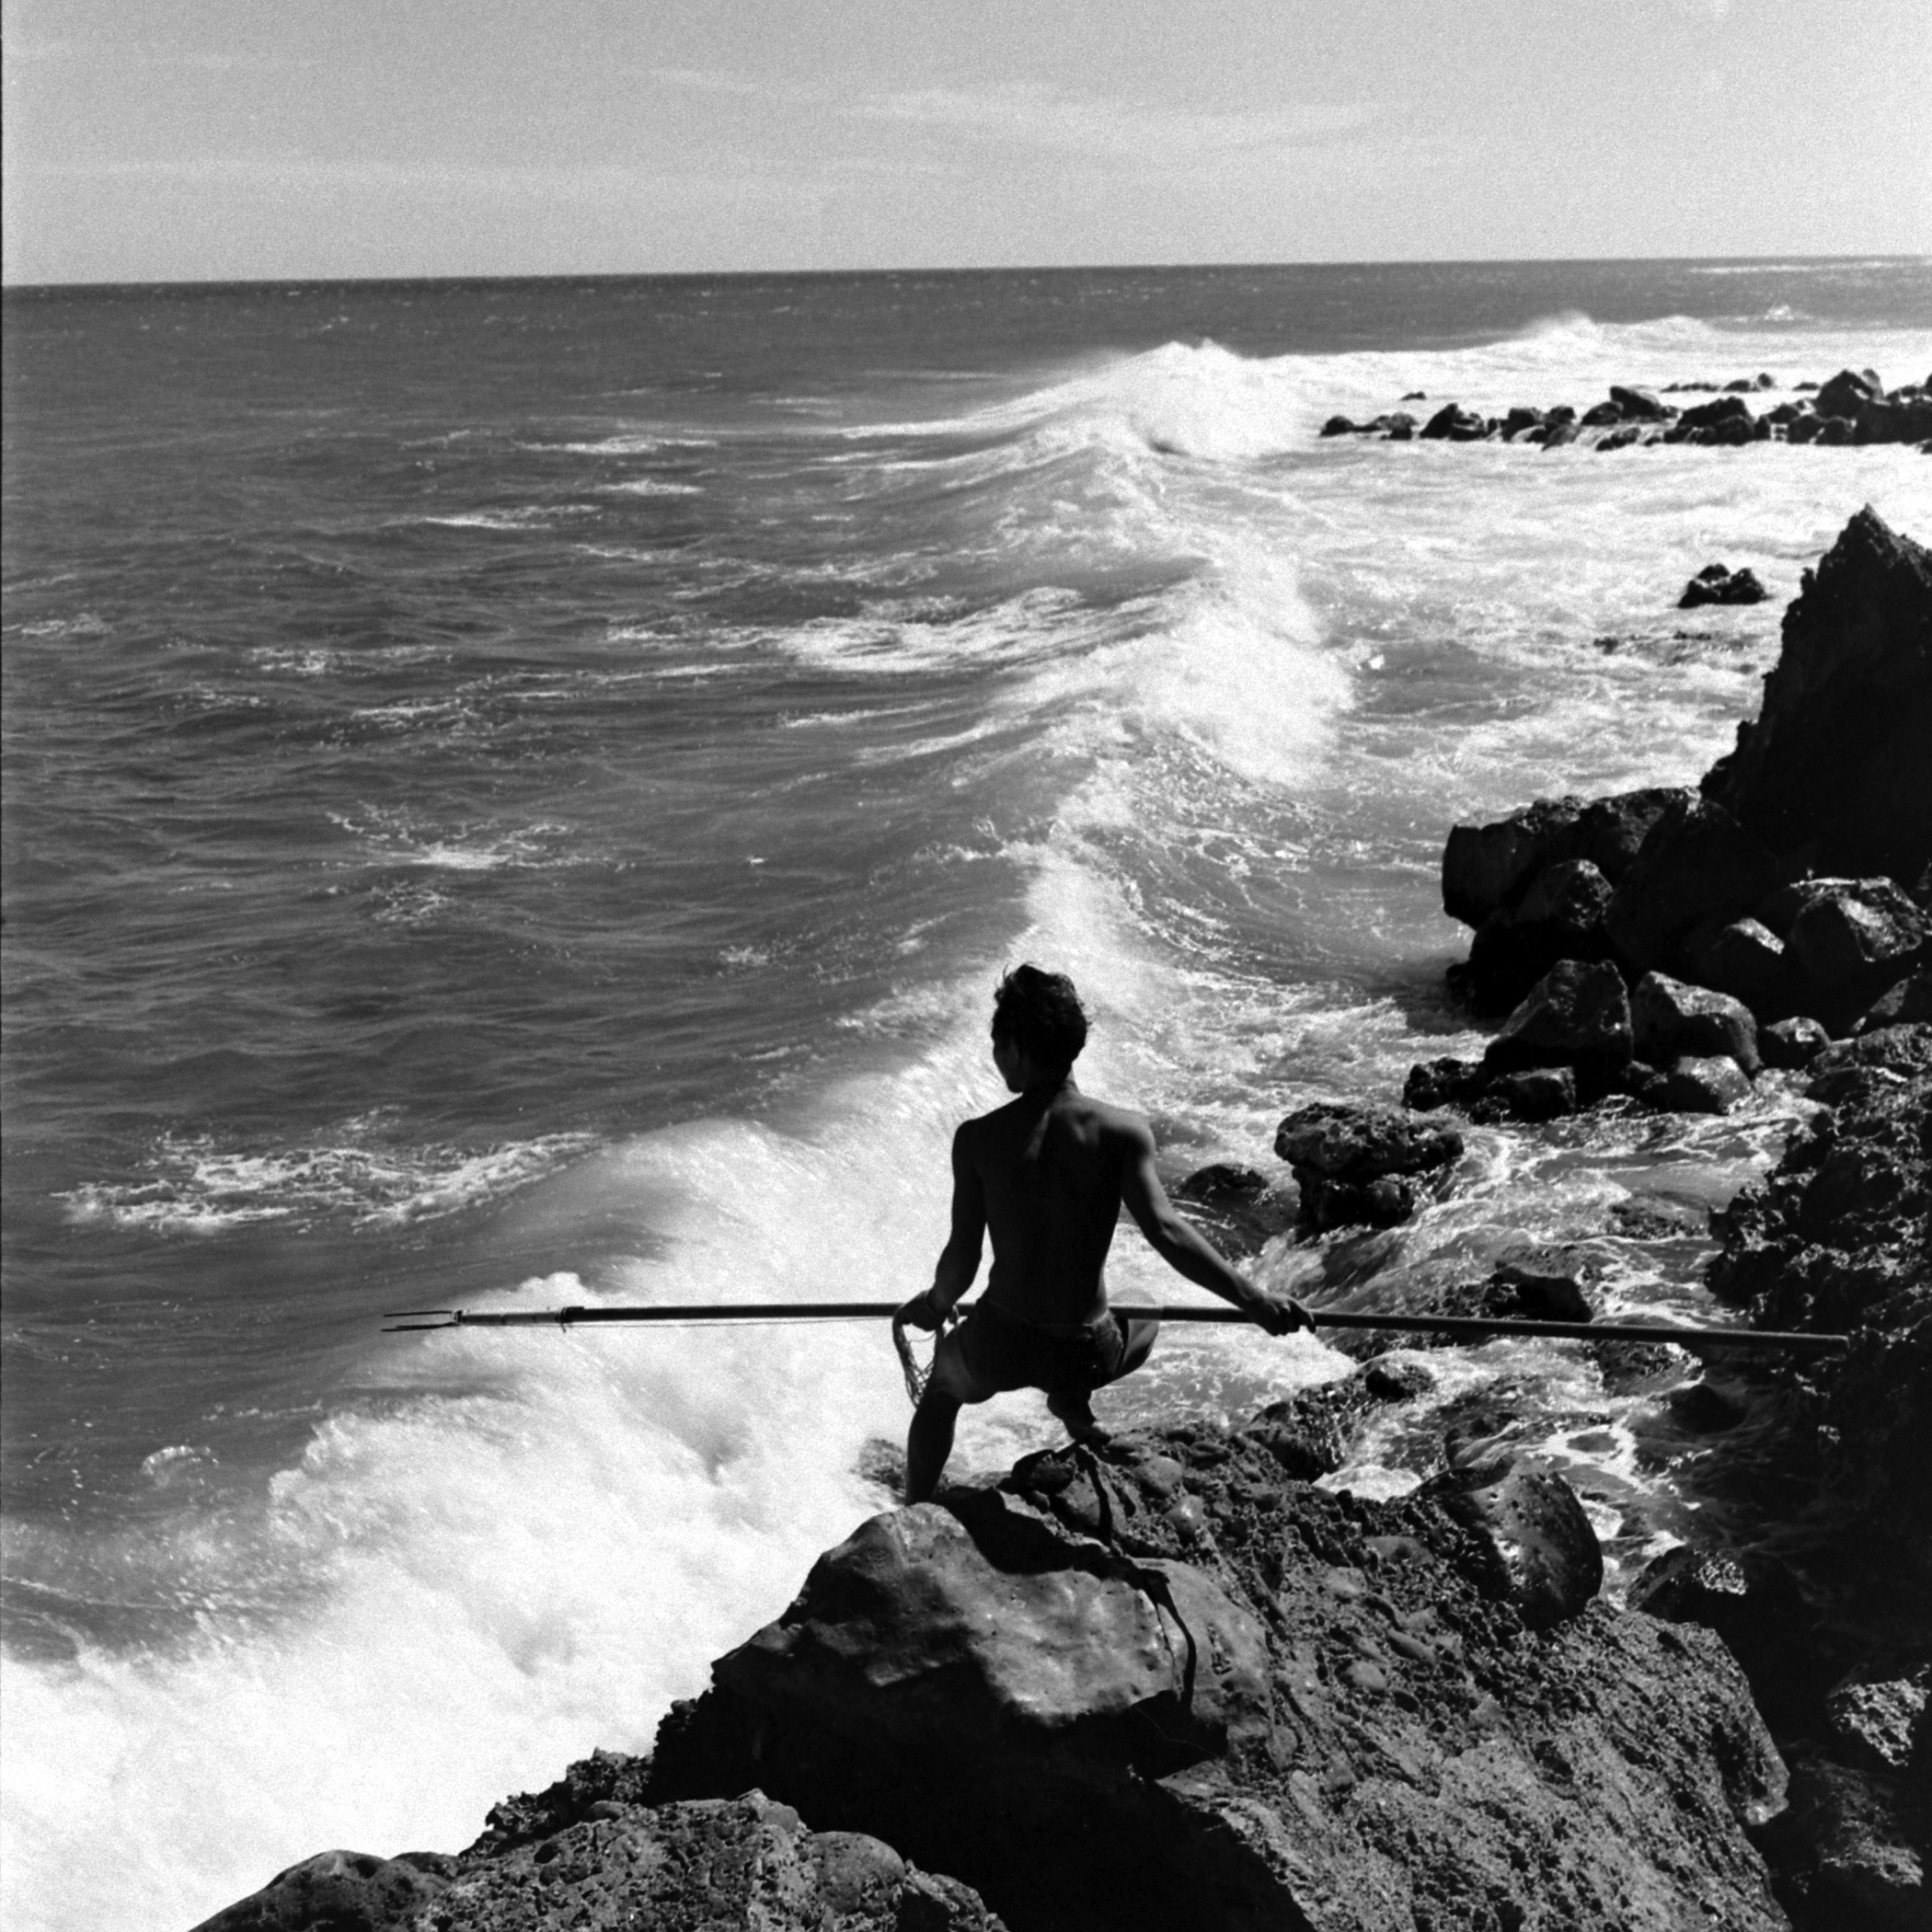 A fisherman with a spear prepares to make a catch.